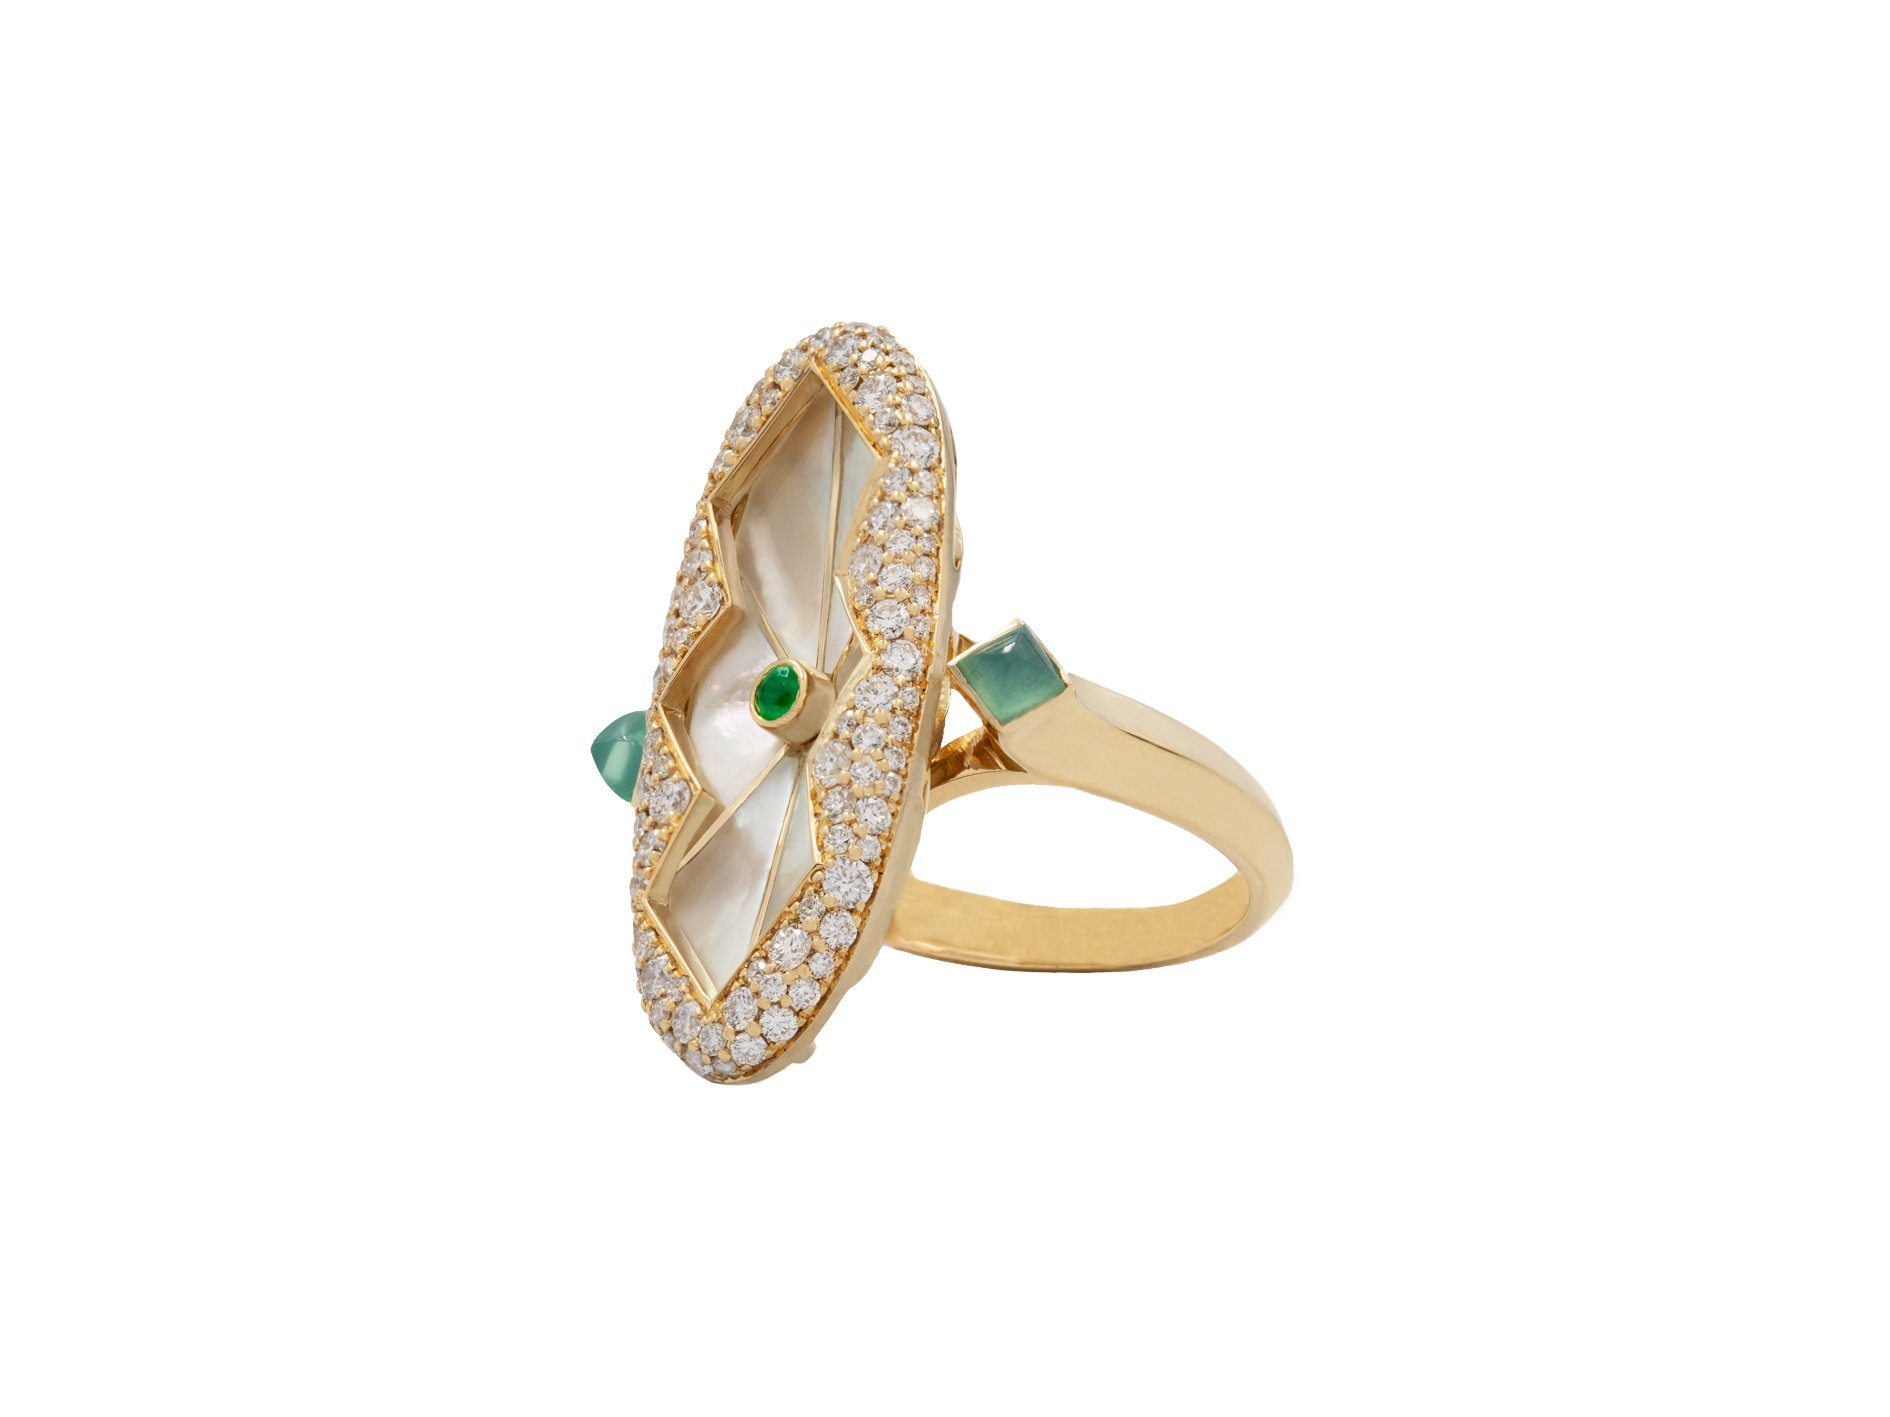 ROSE RING IN YELLOW GOLD AND EMERALD